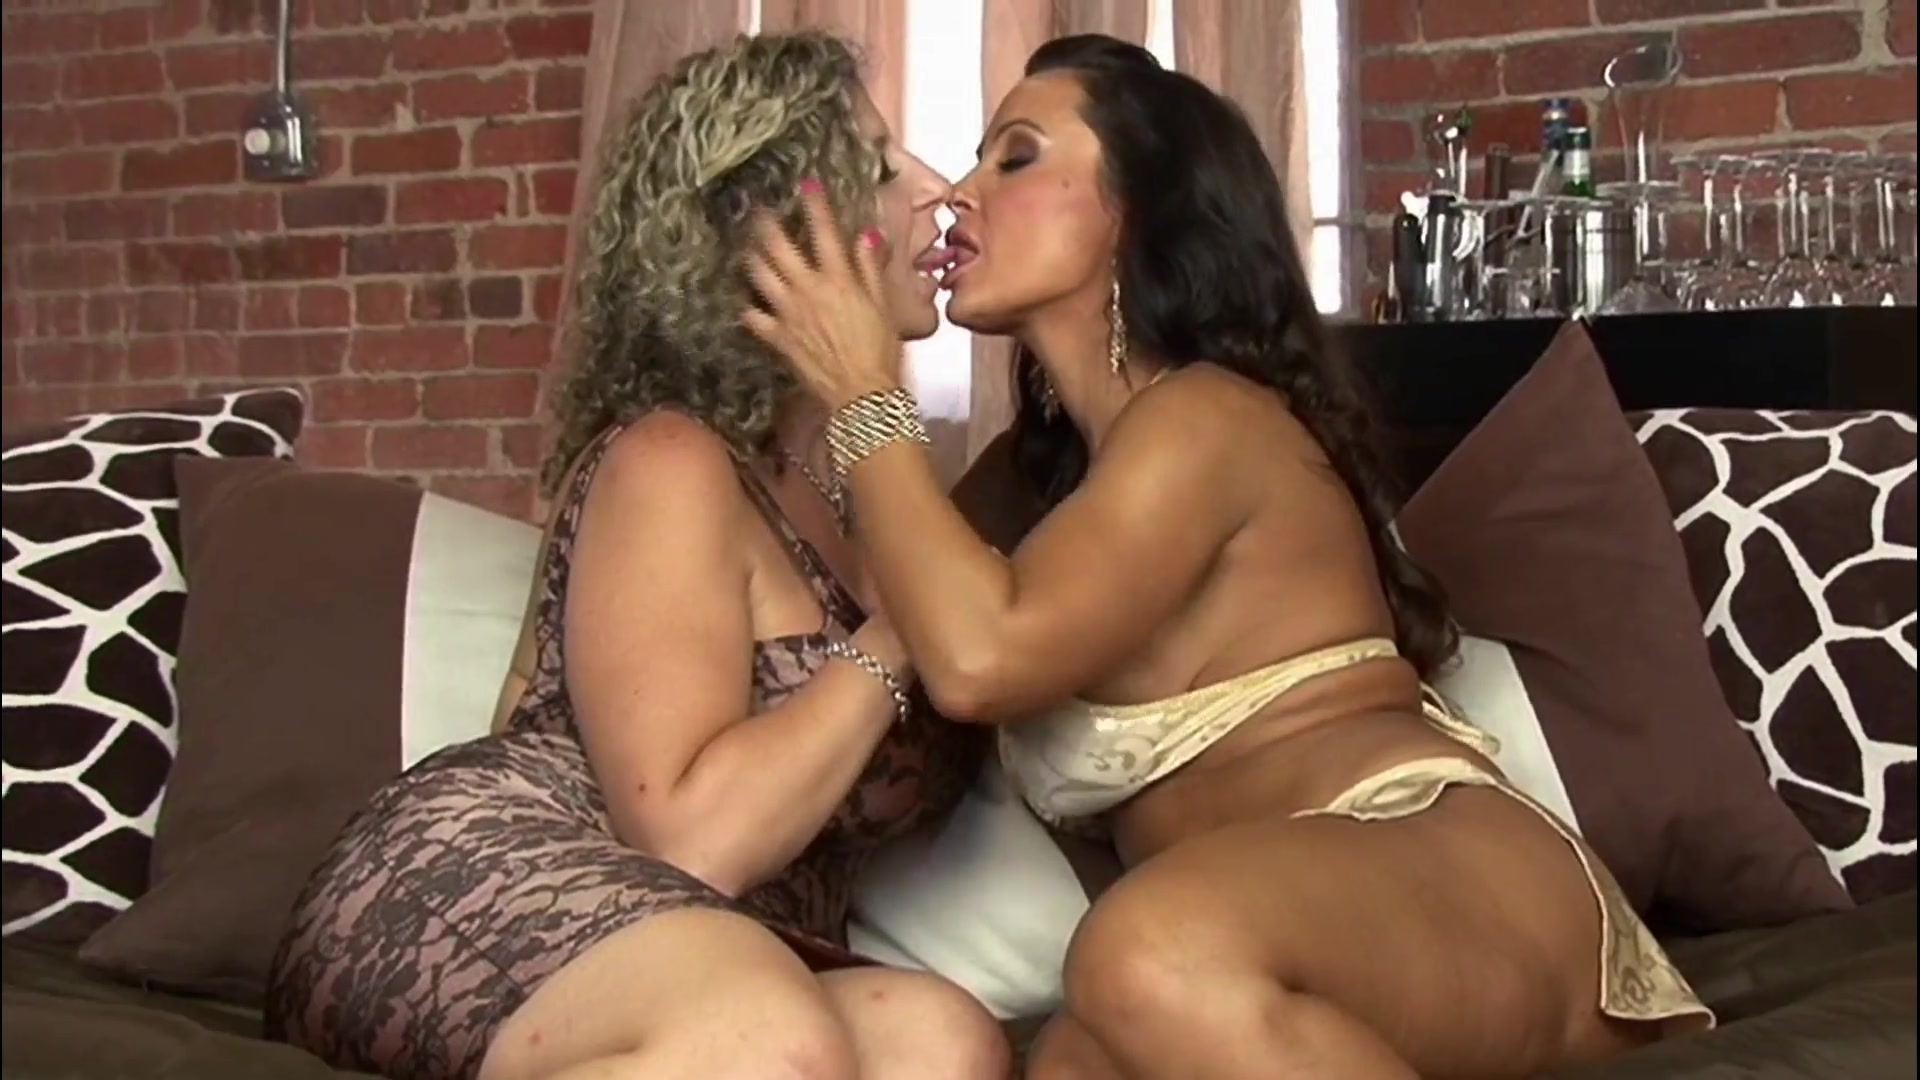 2 milfs making out